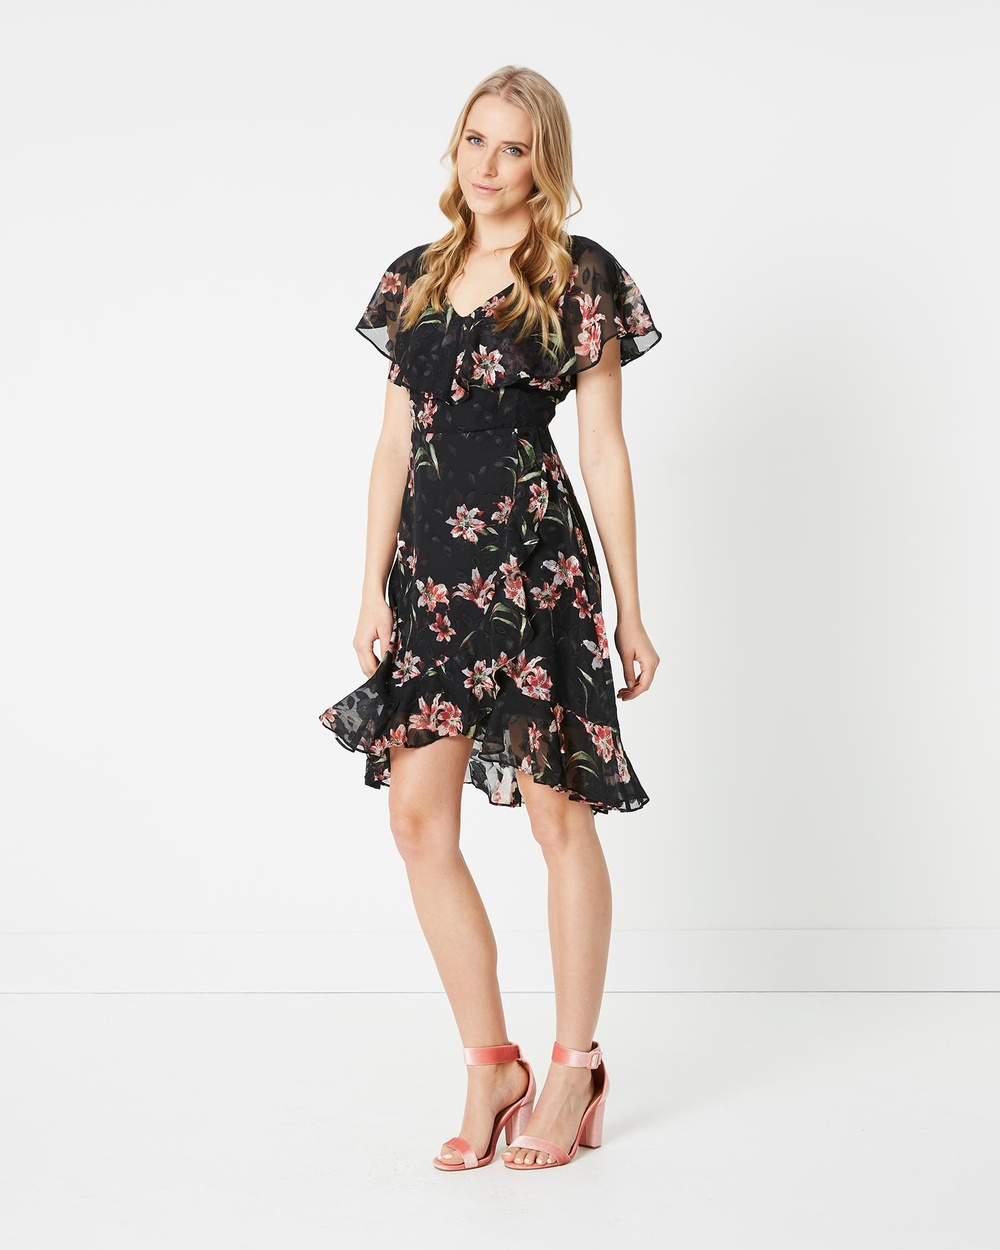 Stella Print Mirror Mirror Dress